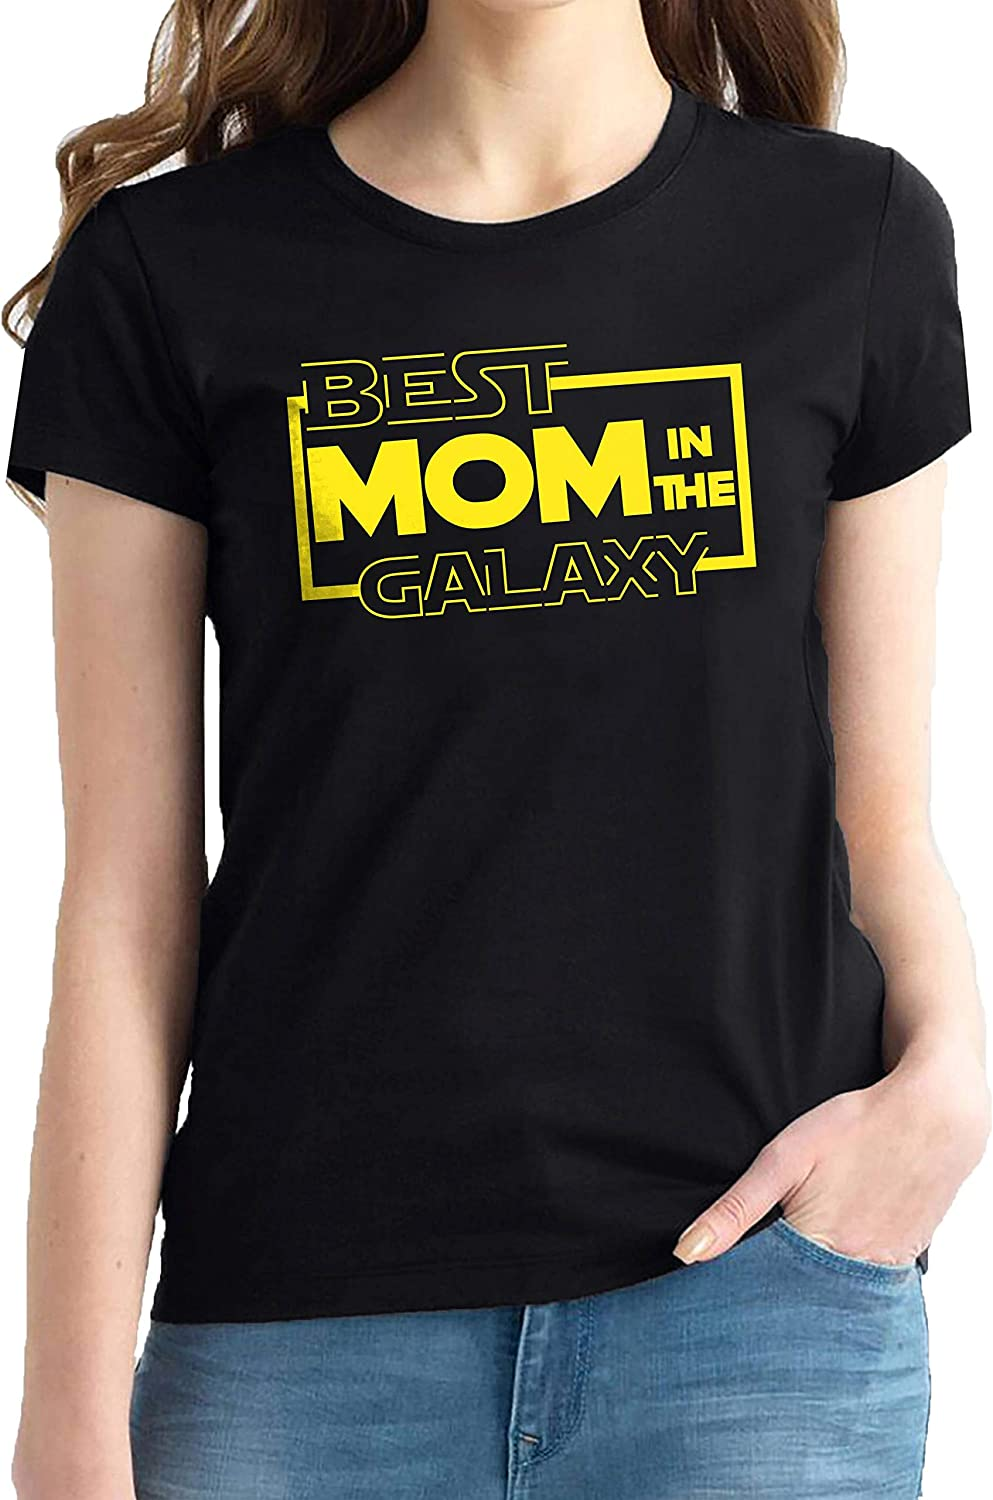 Star Wars Fathers Day Shirt - Adult Best Mom in The Galaxy Shirts - Novelty Shirt for Women